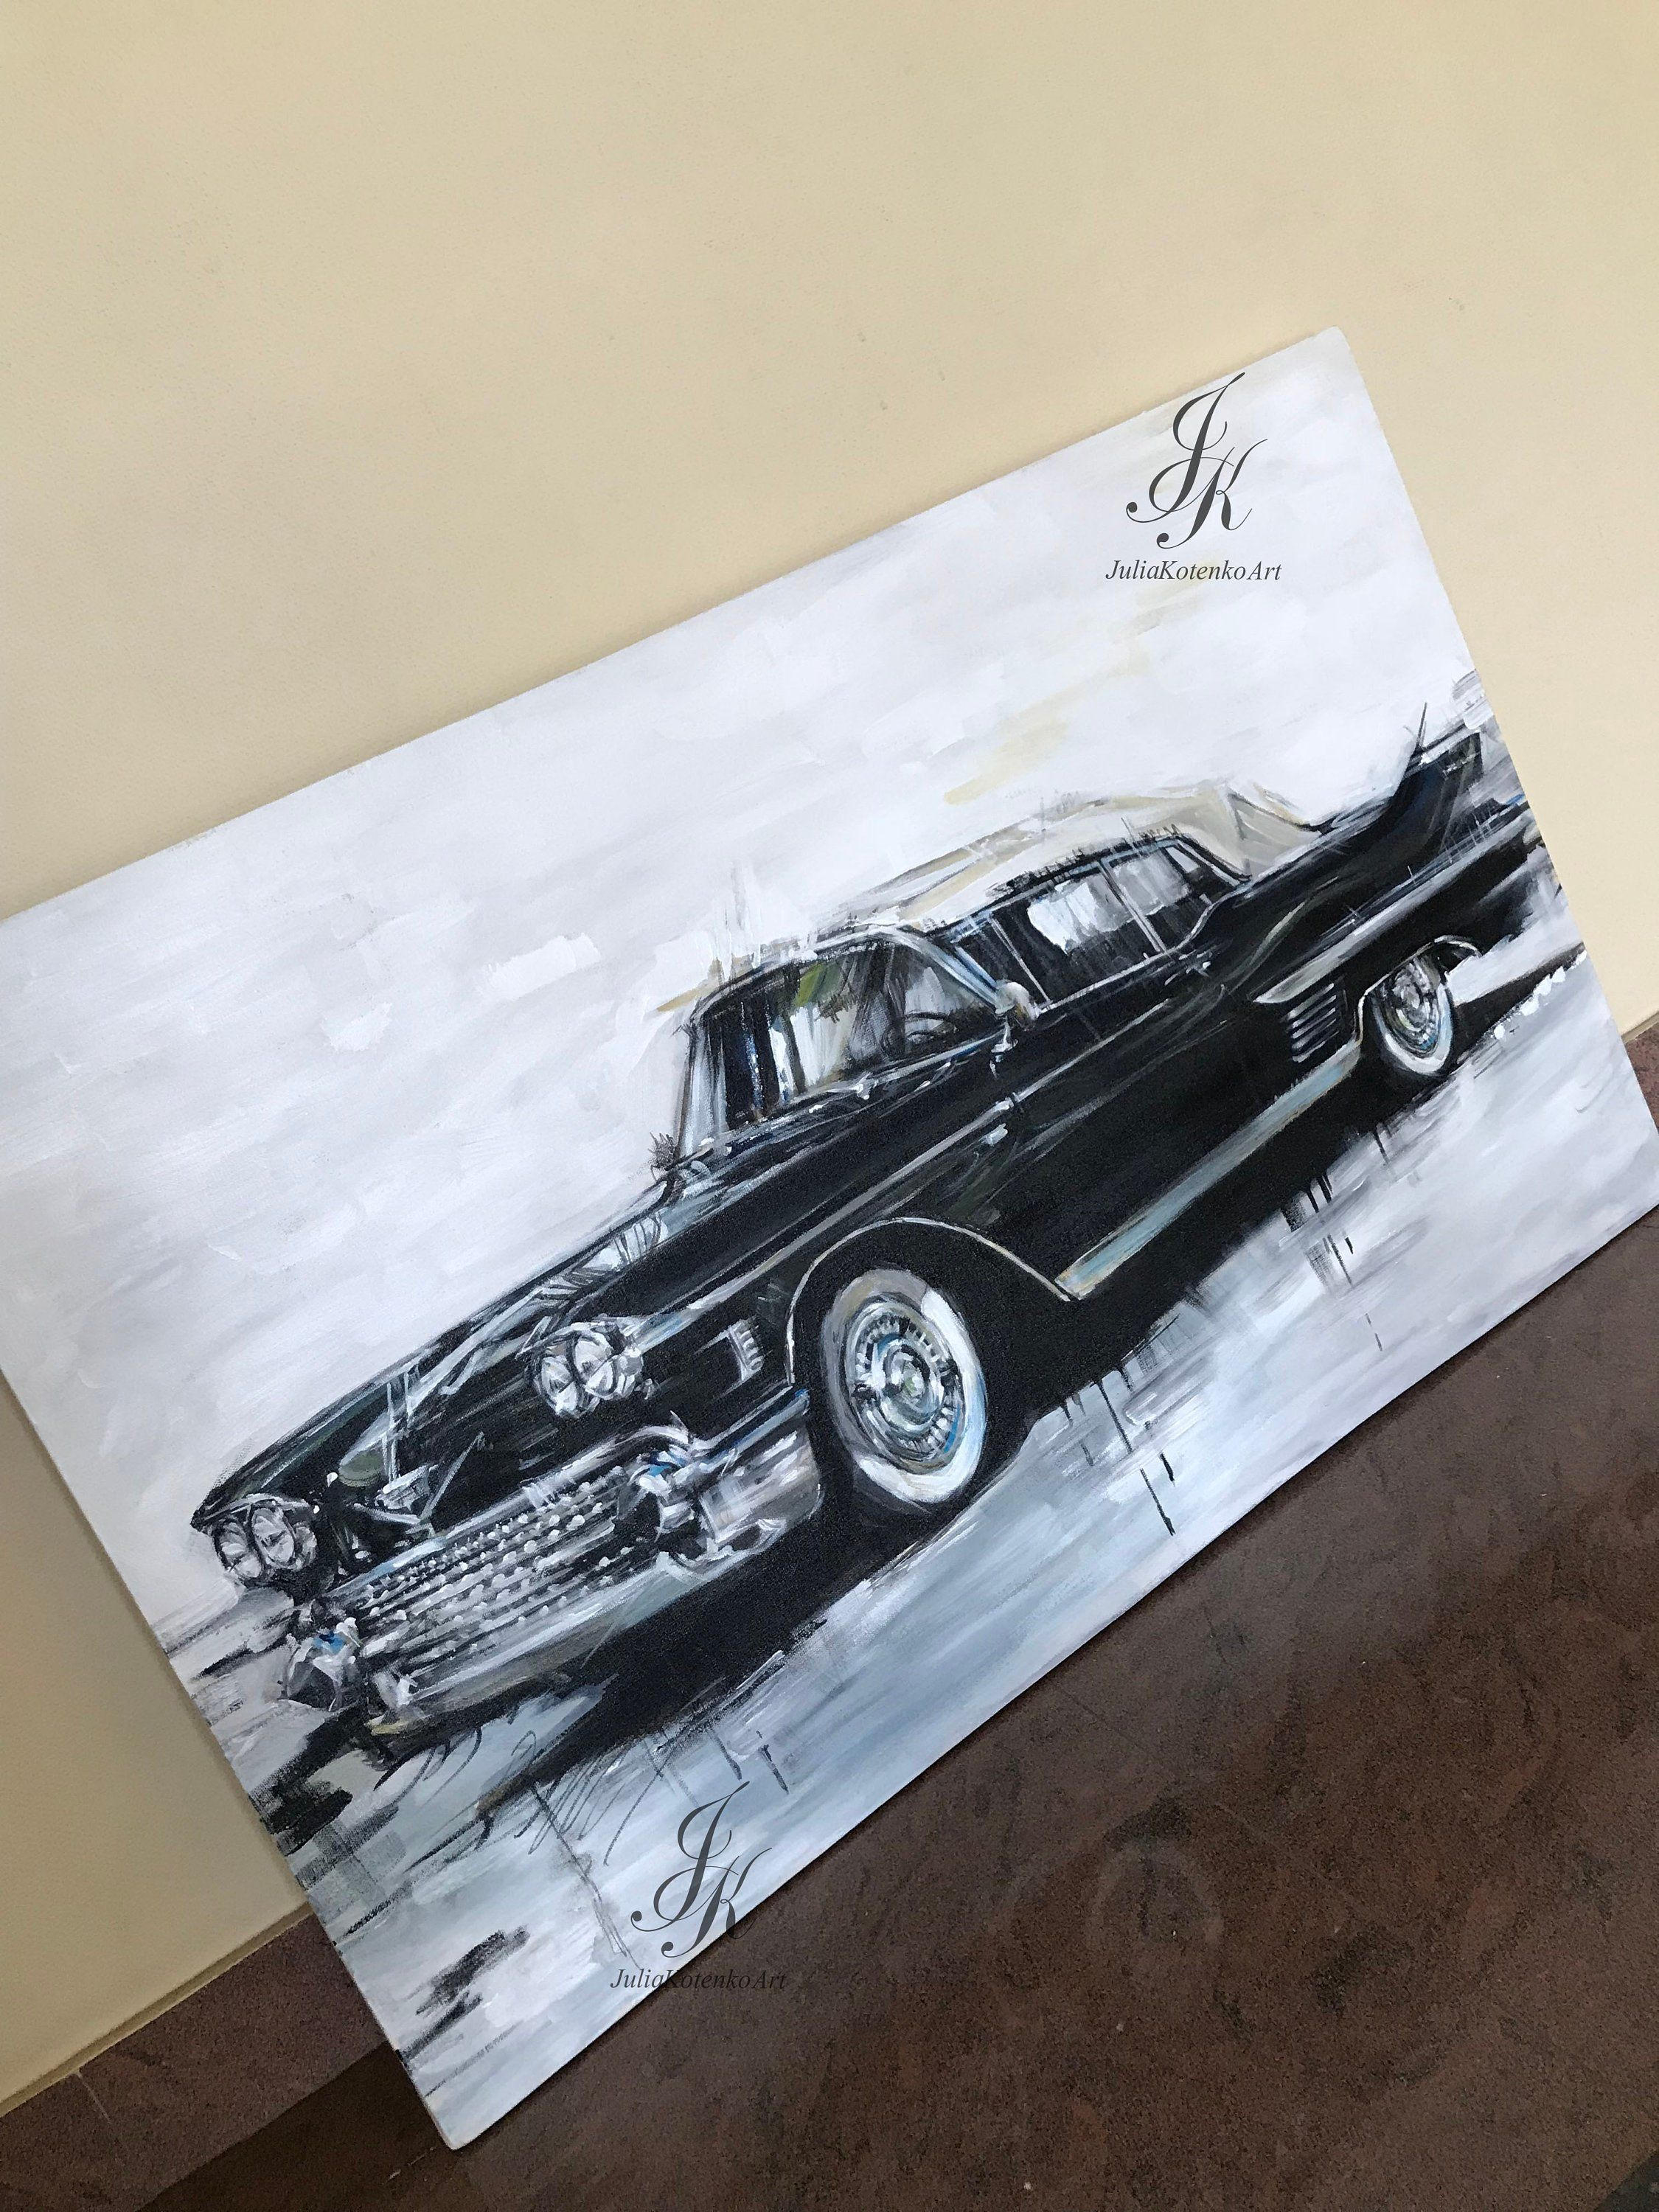 Large Retro Car Painting,Black car Retro car Hand Made Art Classic Car, Original Painting Modern Acrylic Painting On Canvas by Julia Kotenko